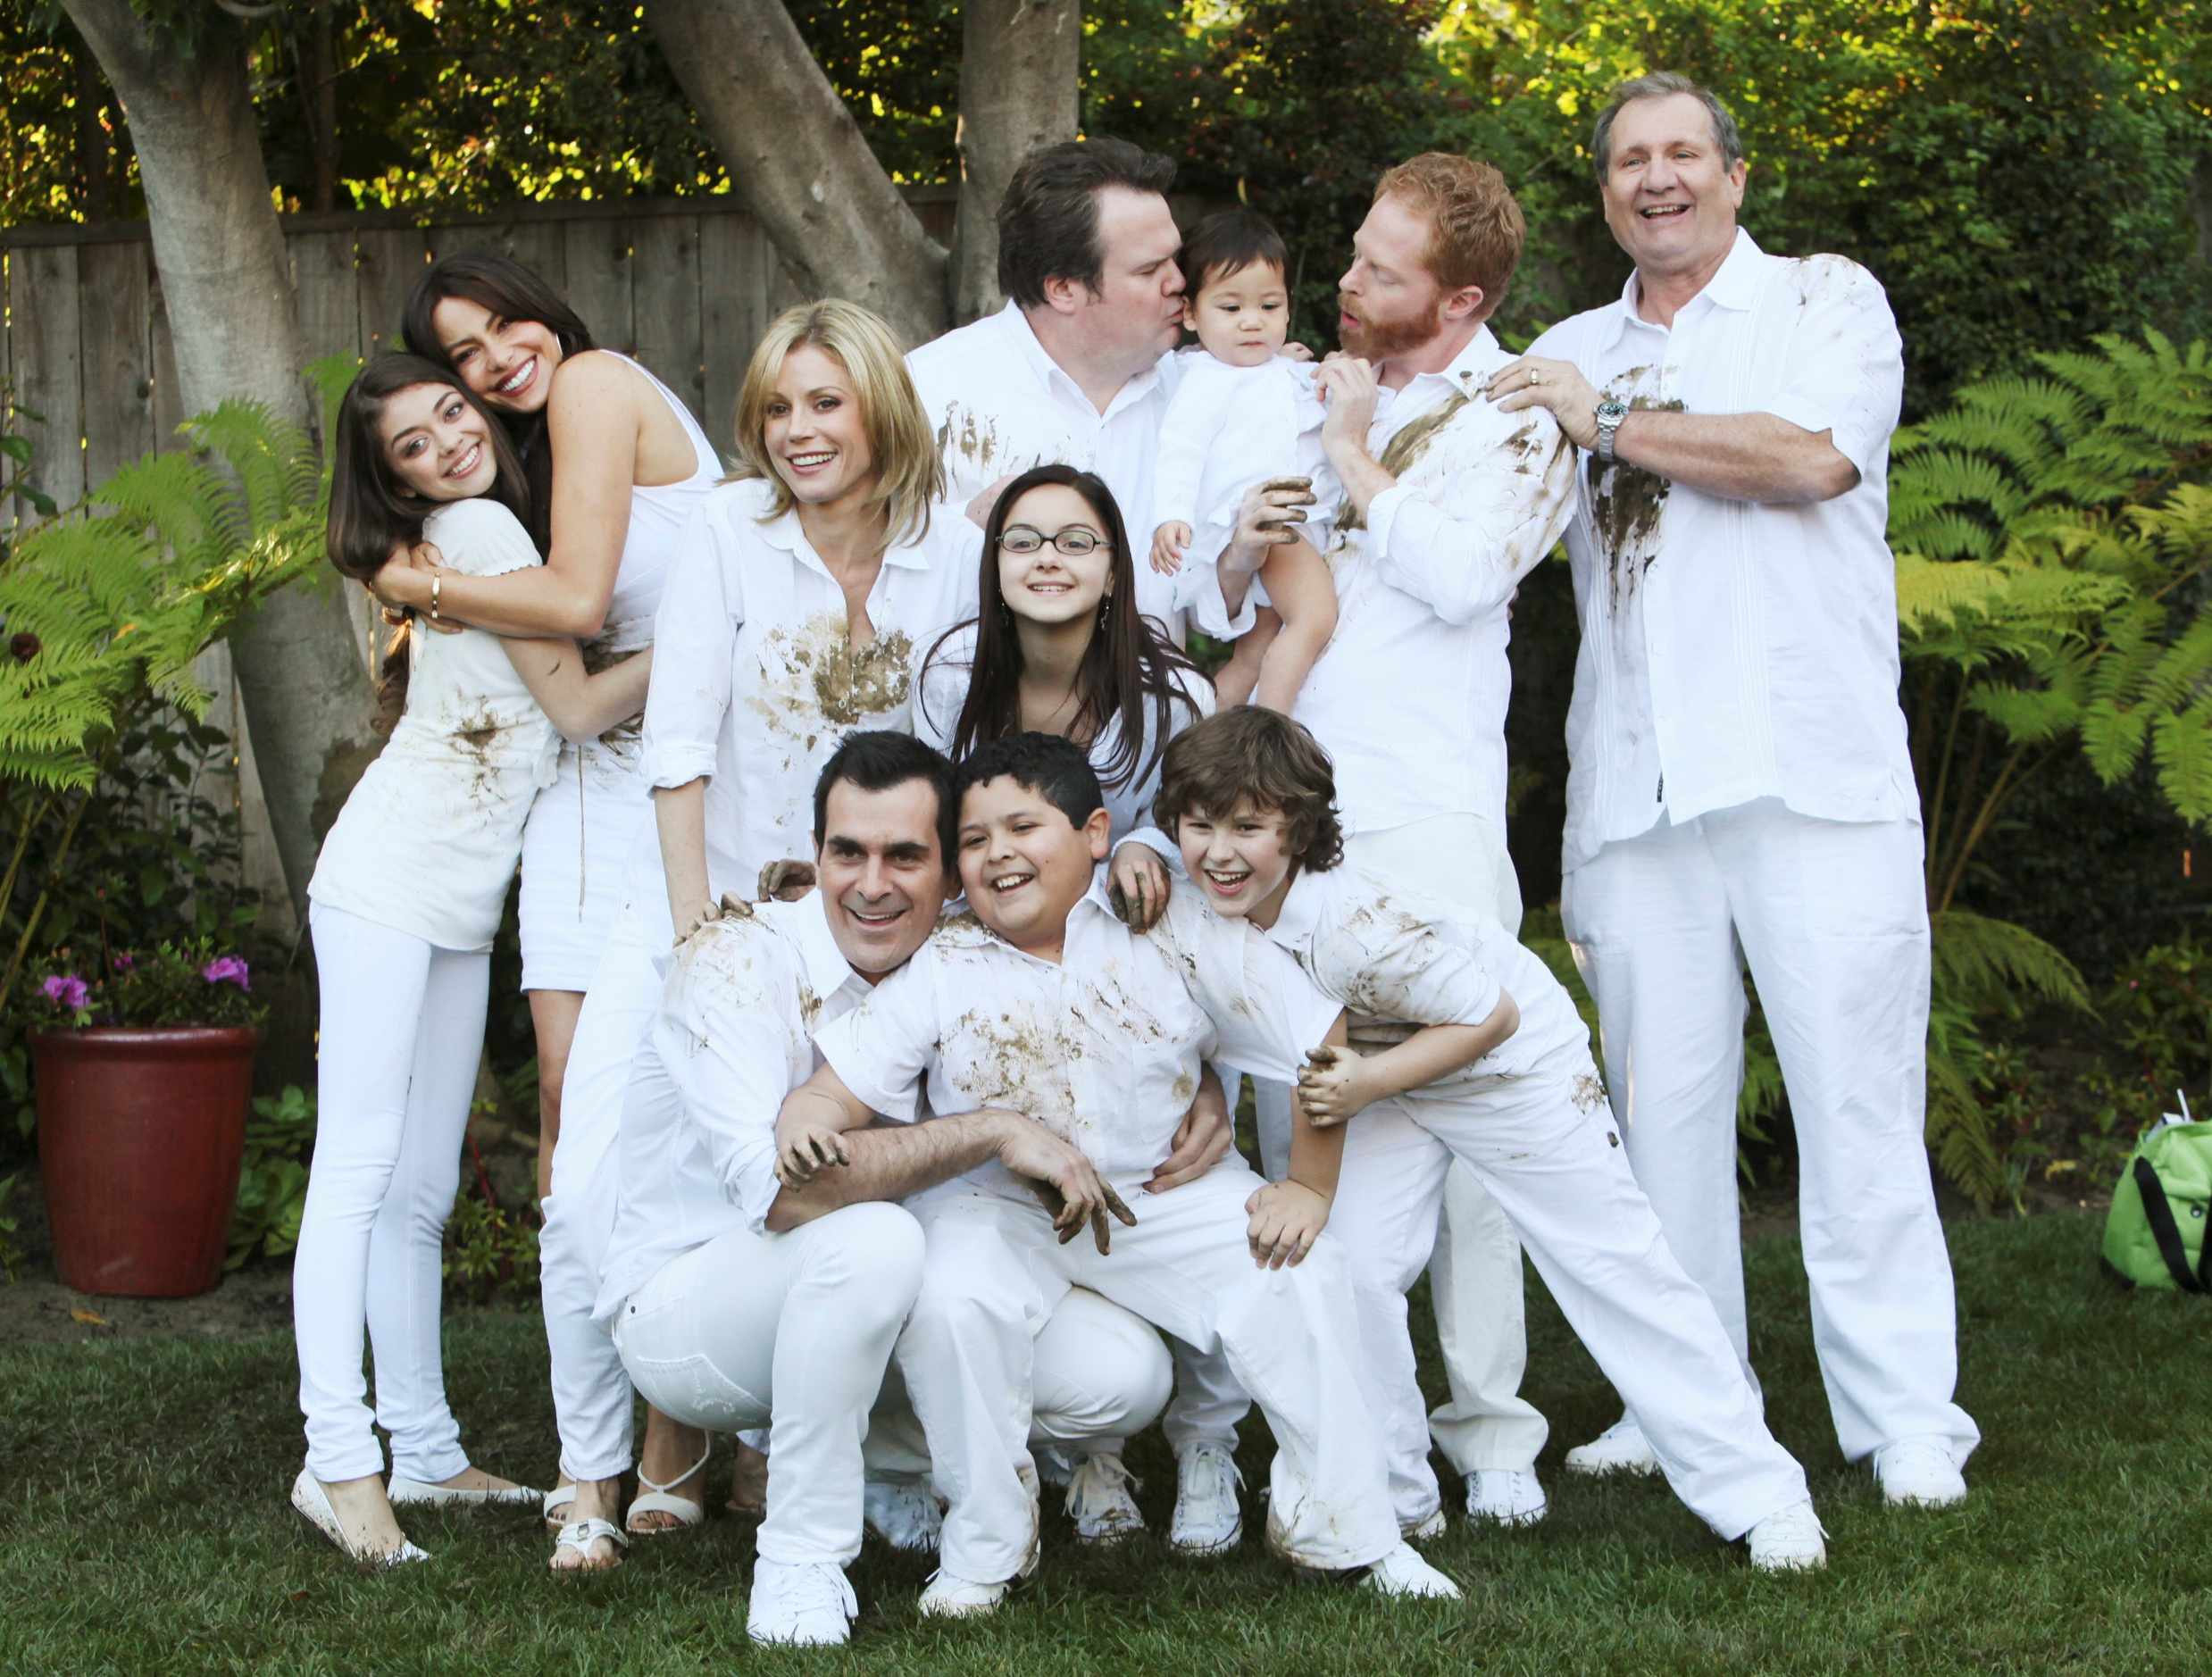 http://telediscreta.files.wordpress.com/2011/06/modernfamily.jpg